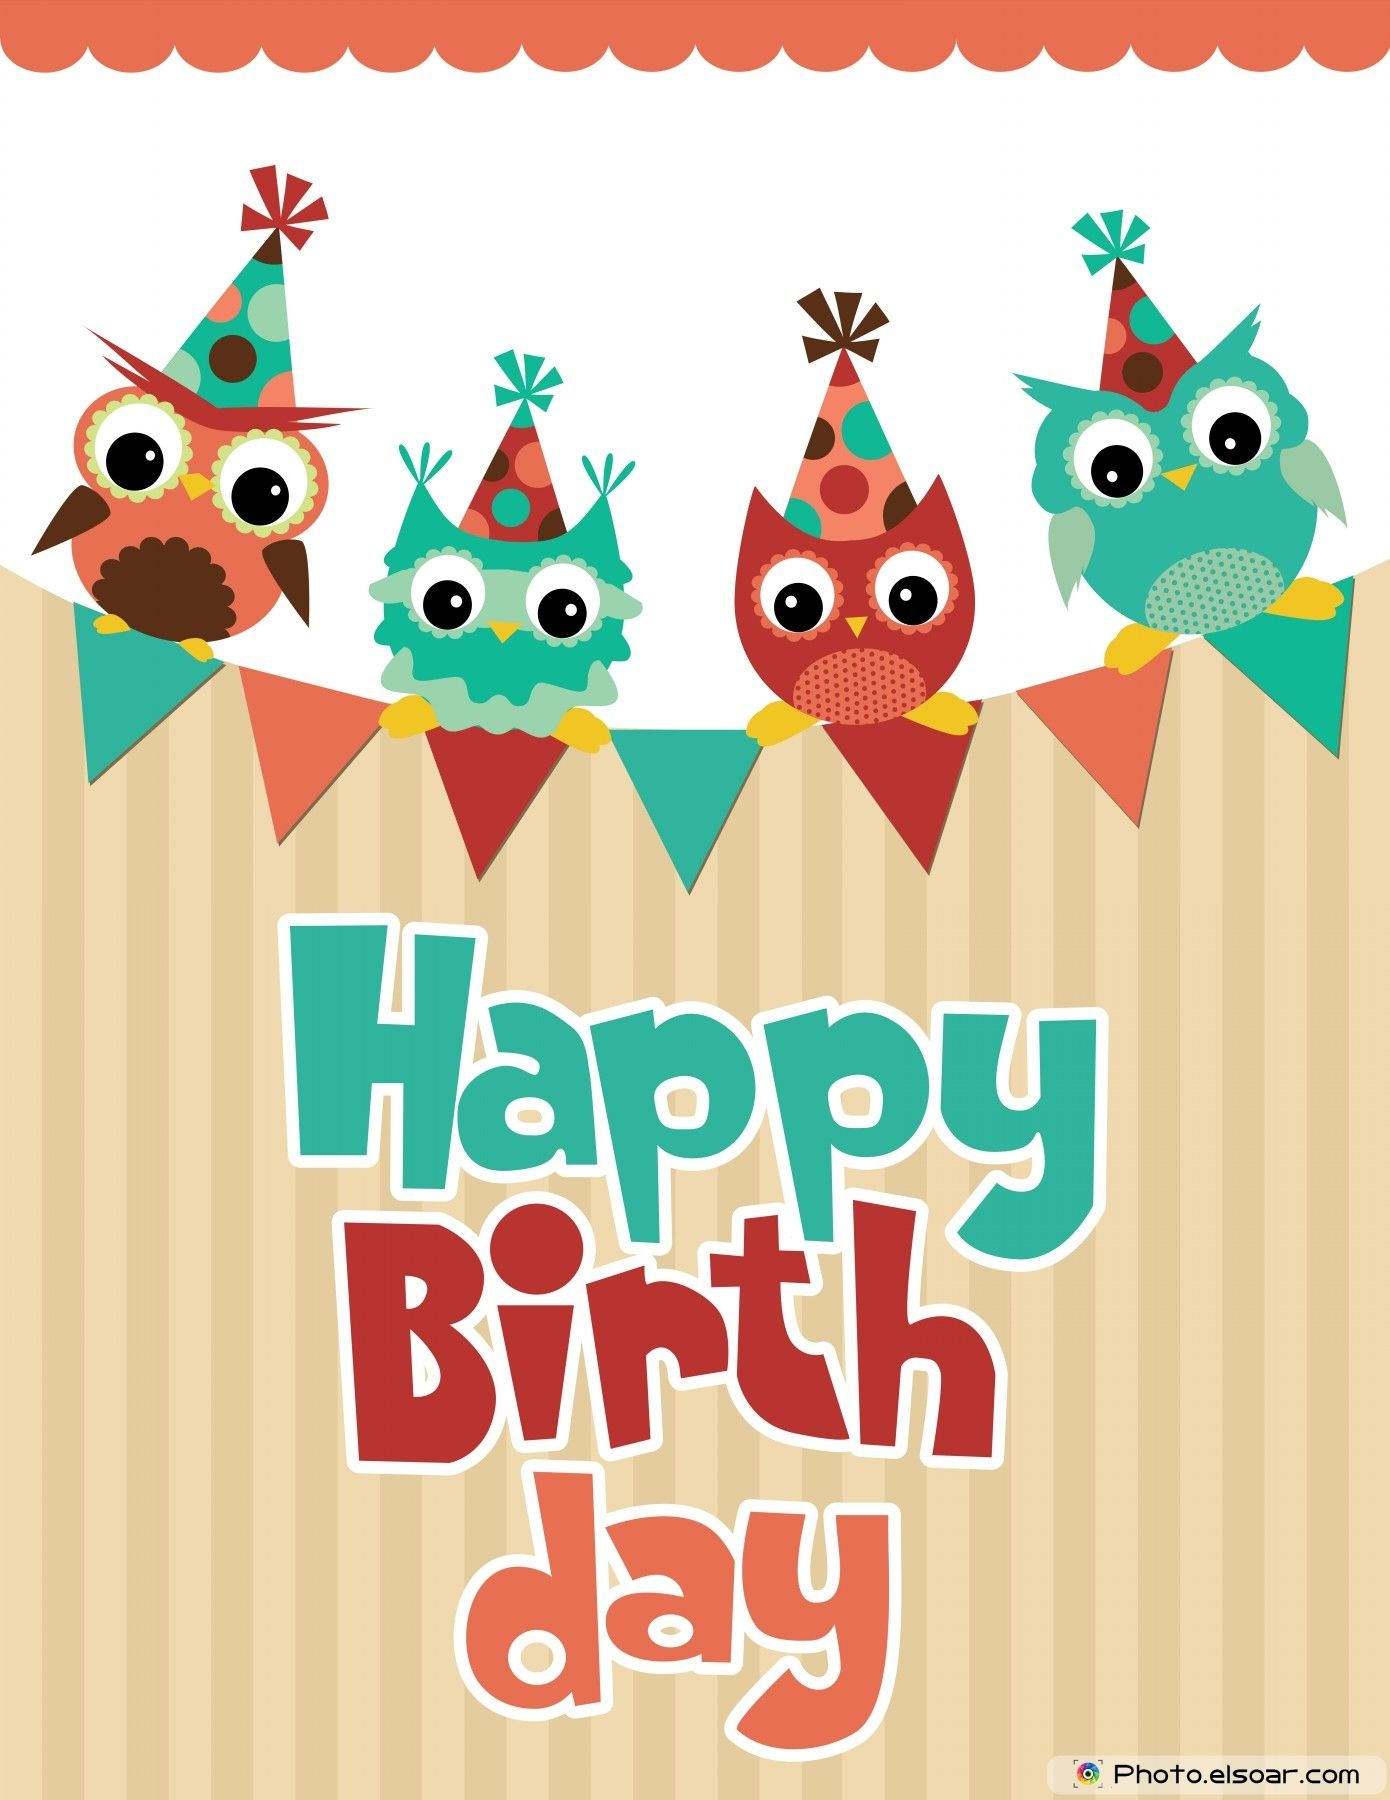 Happy Birthday card design with funny angry owl birthday